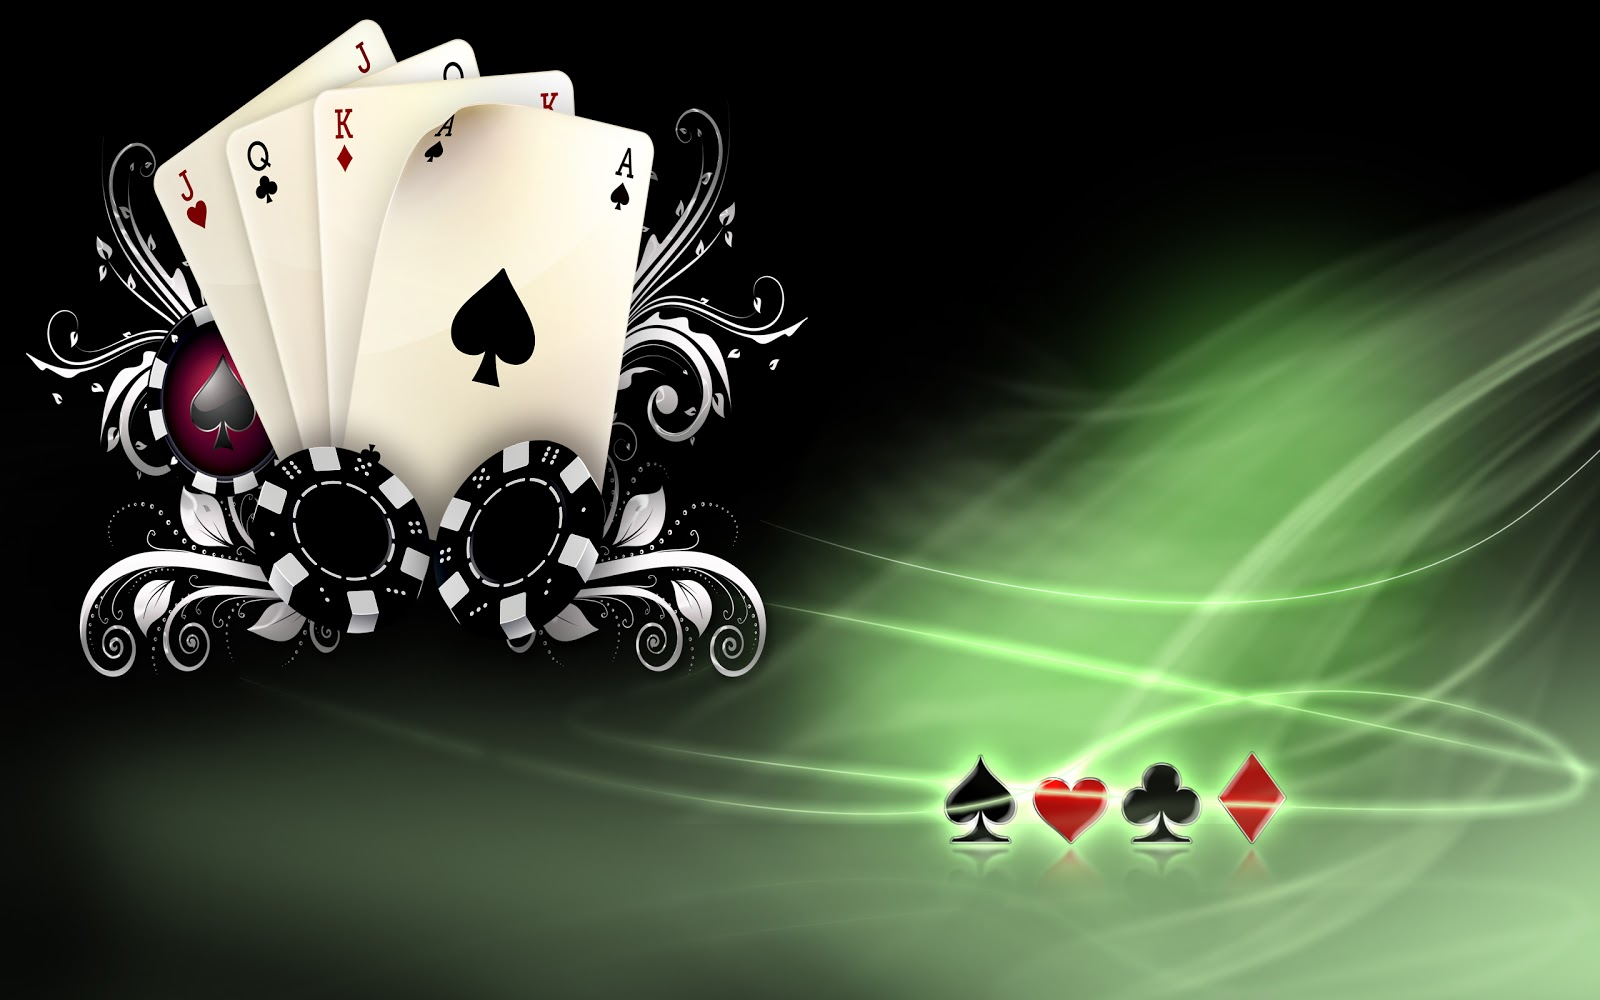 Poker Cards Wallpaper